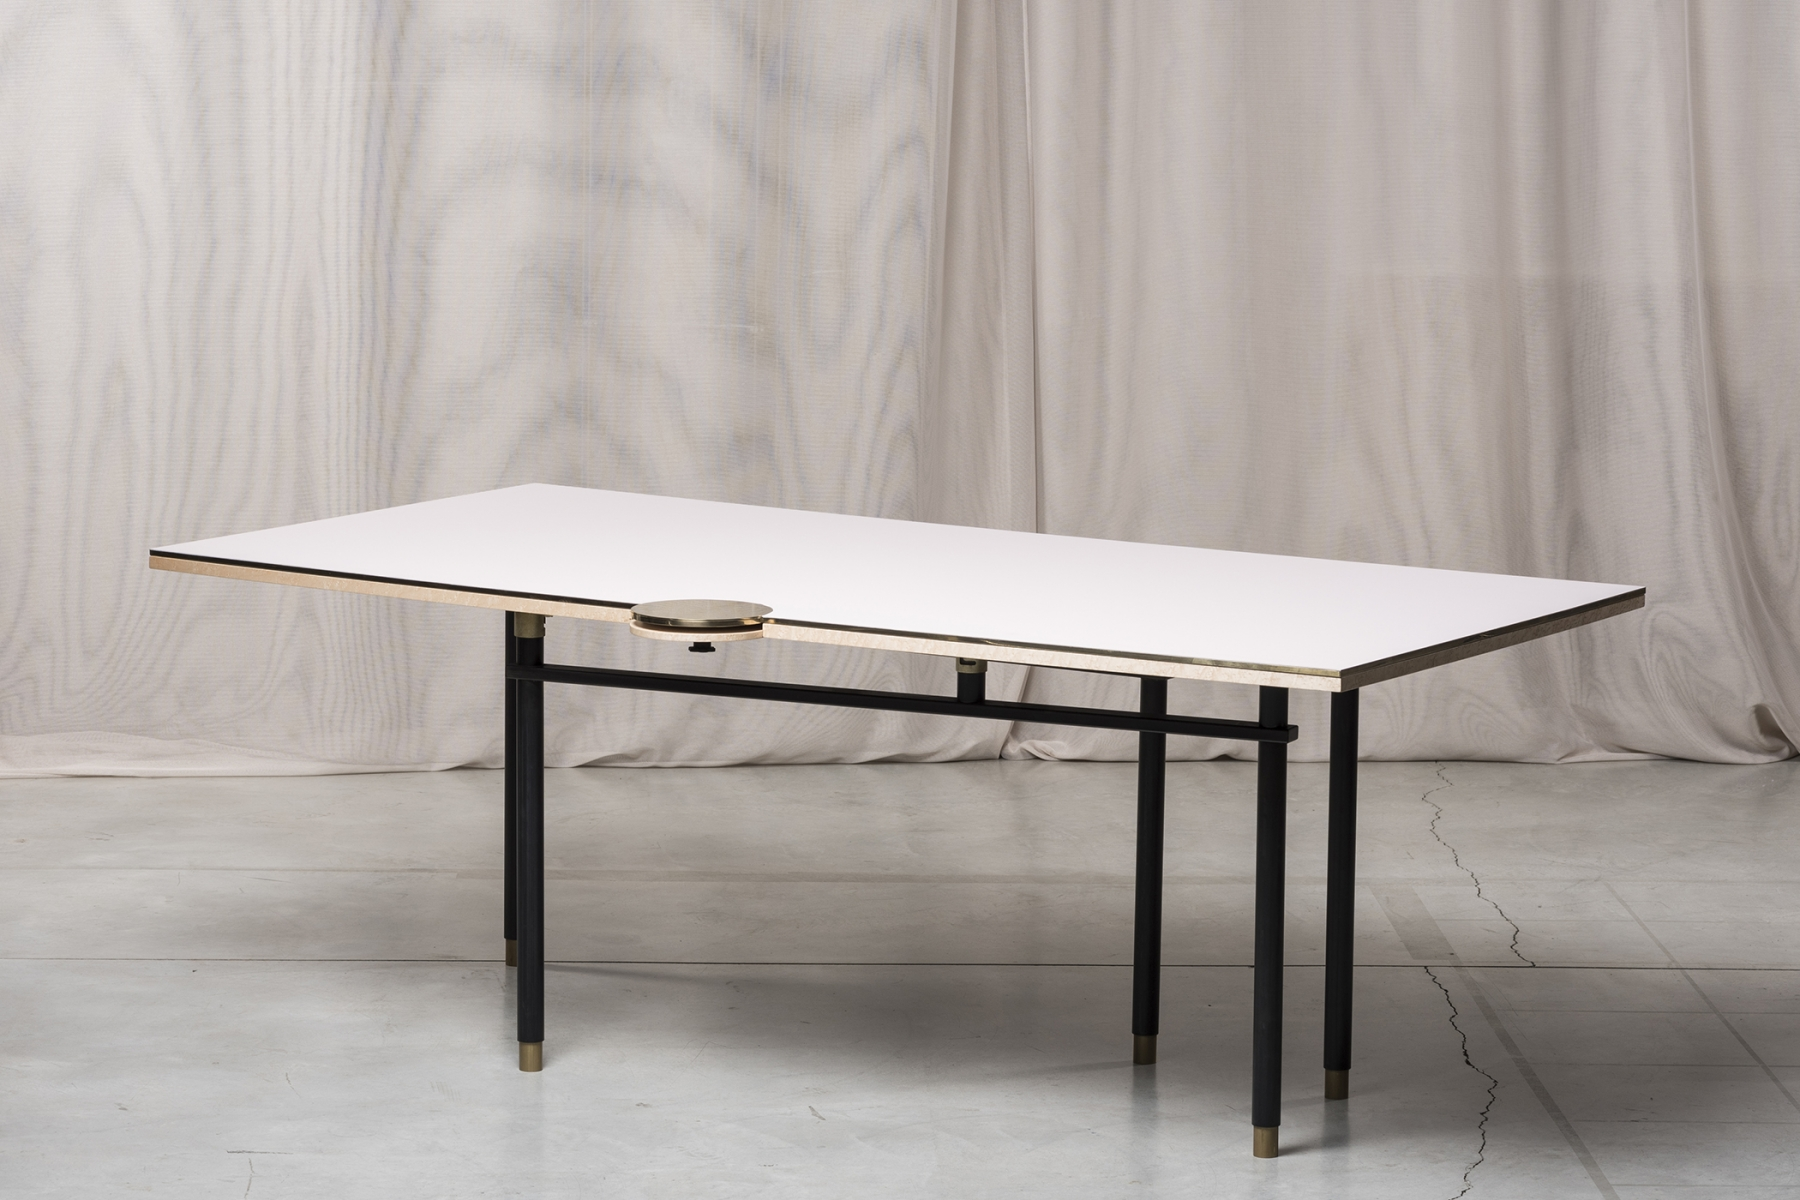 Extendable dining table Massimiliano Locatelli pic-1